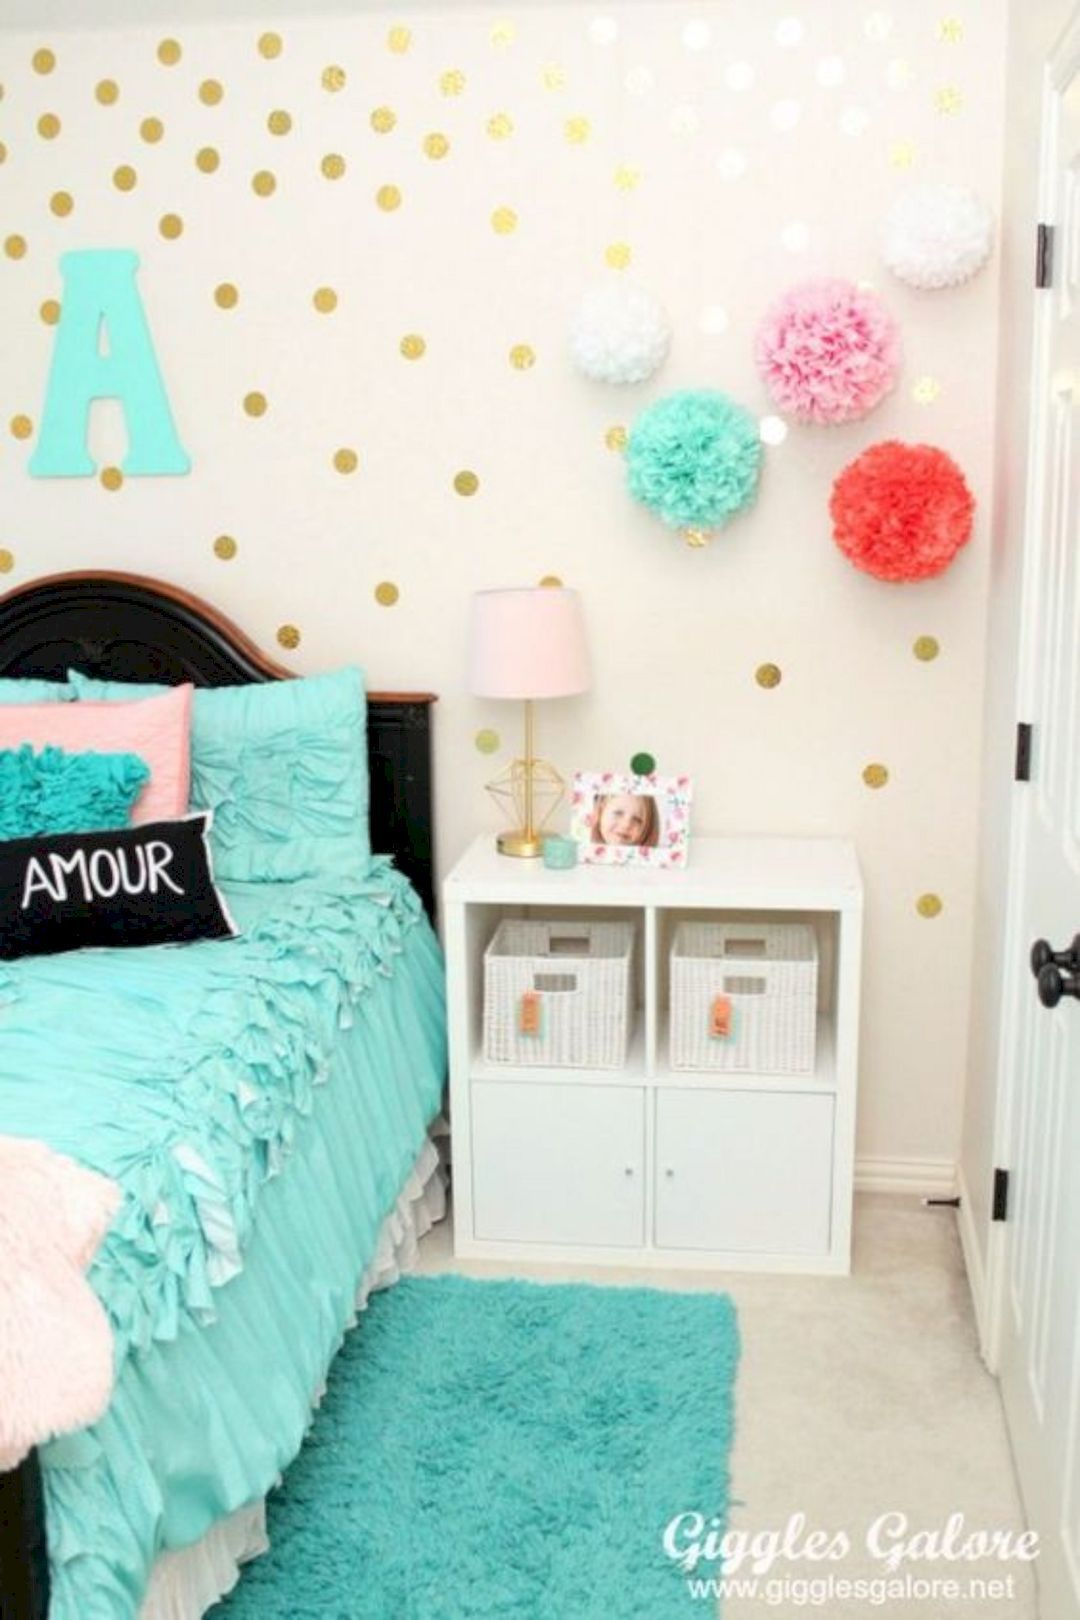 16 Diy Projects To Decorate Your Rooms On Budget Gorgeous Interior